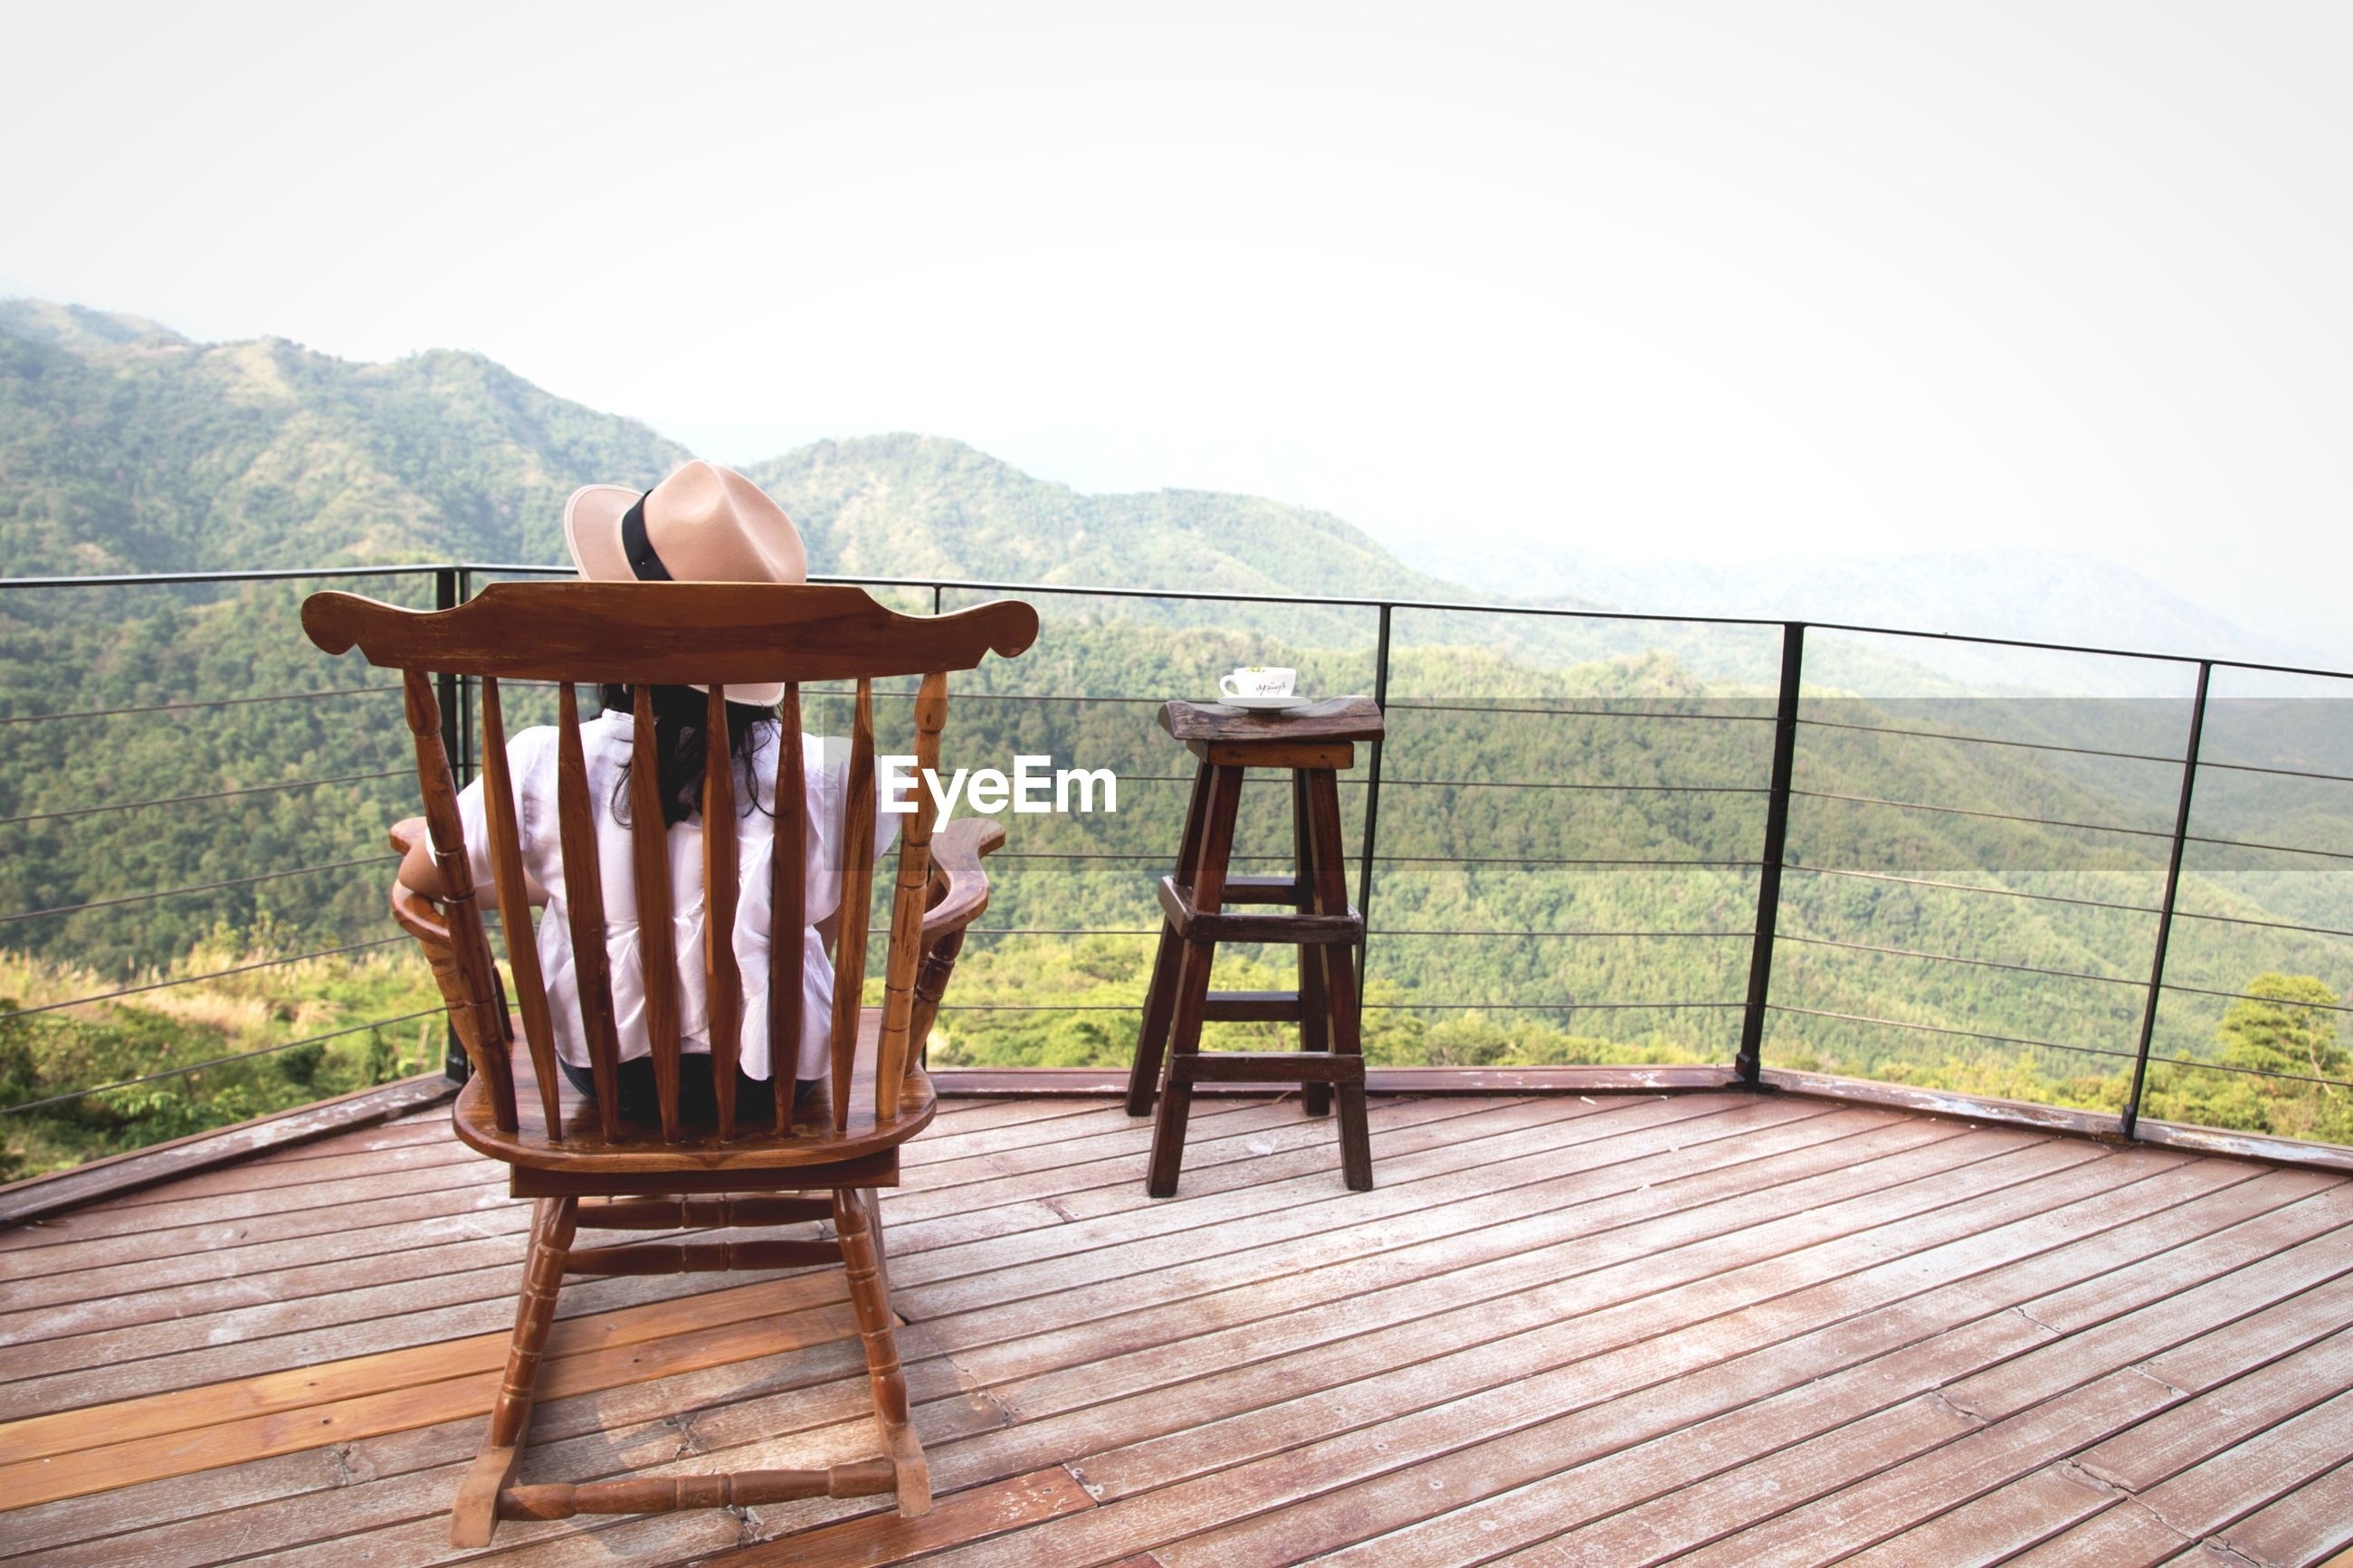 Woman sitting on chair against mountains